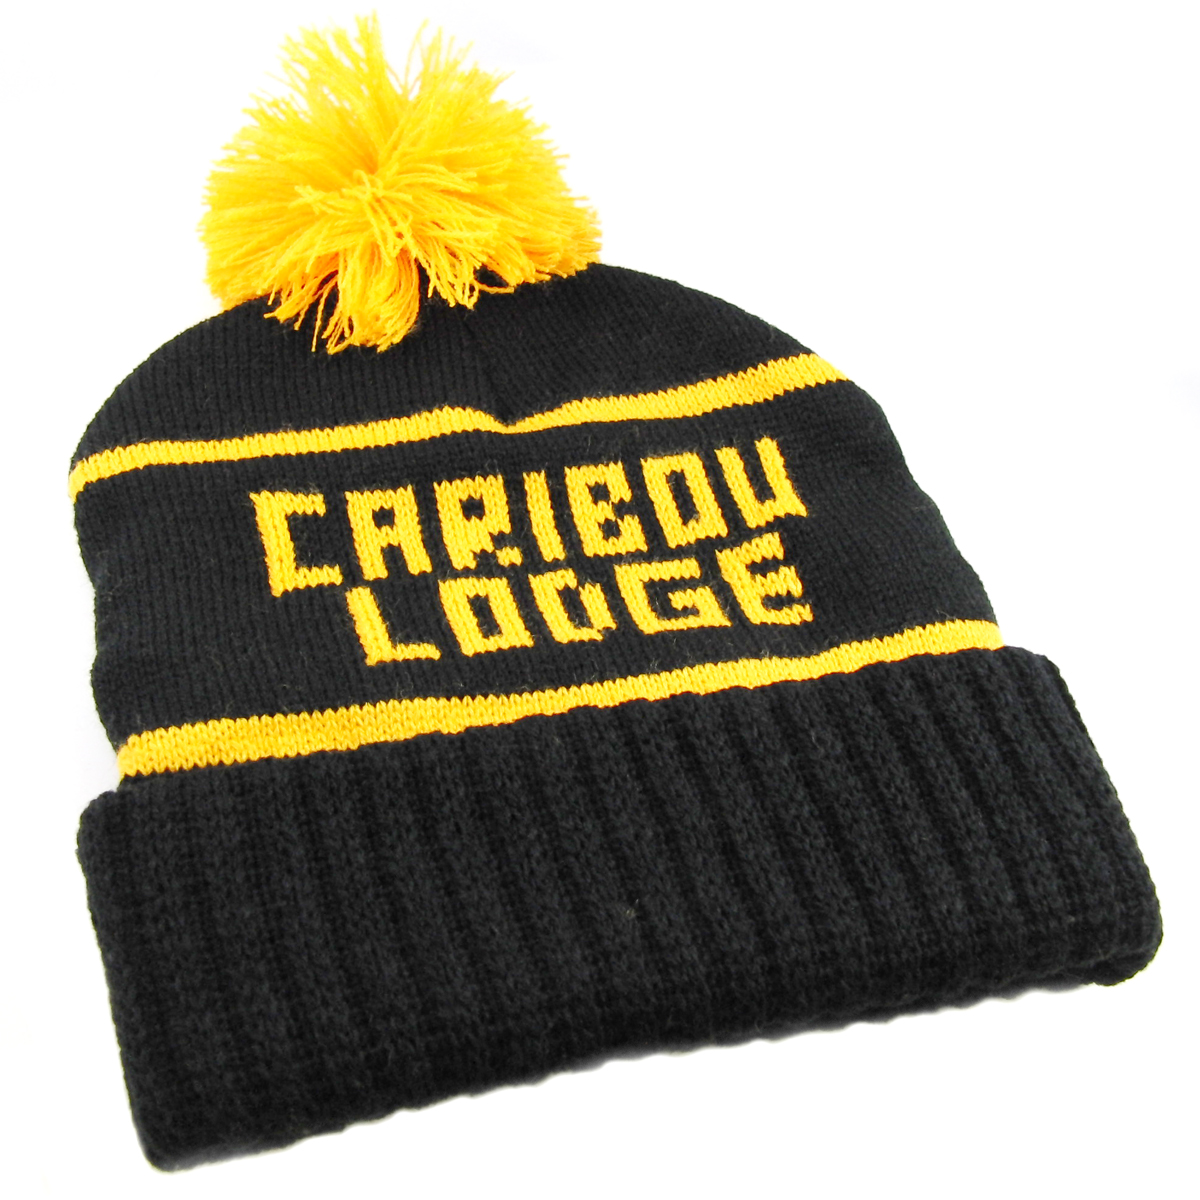 CLYW Toque (Knit Hat)